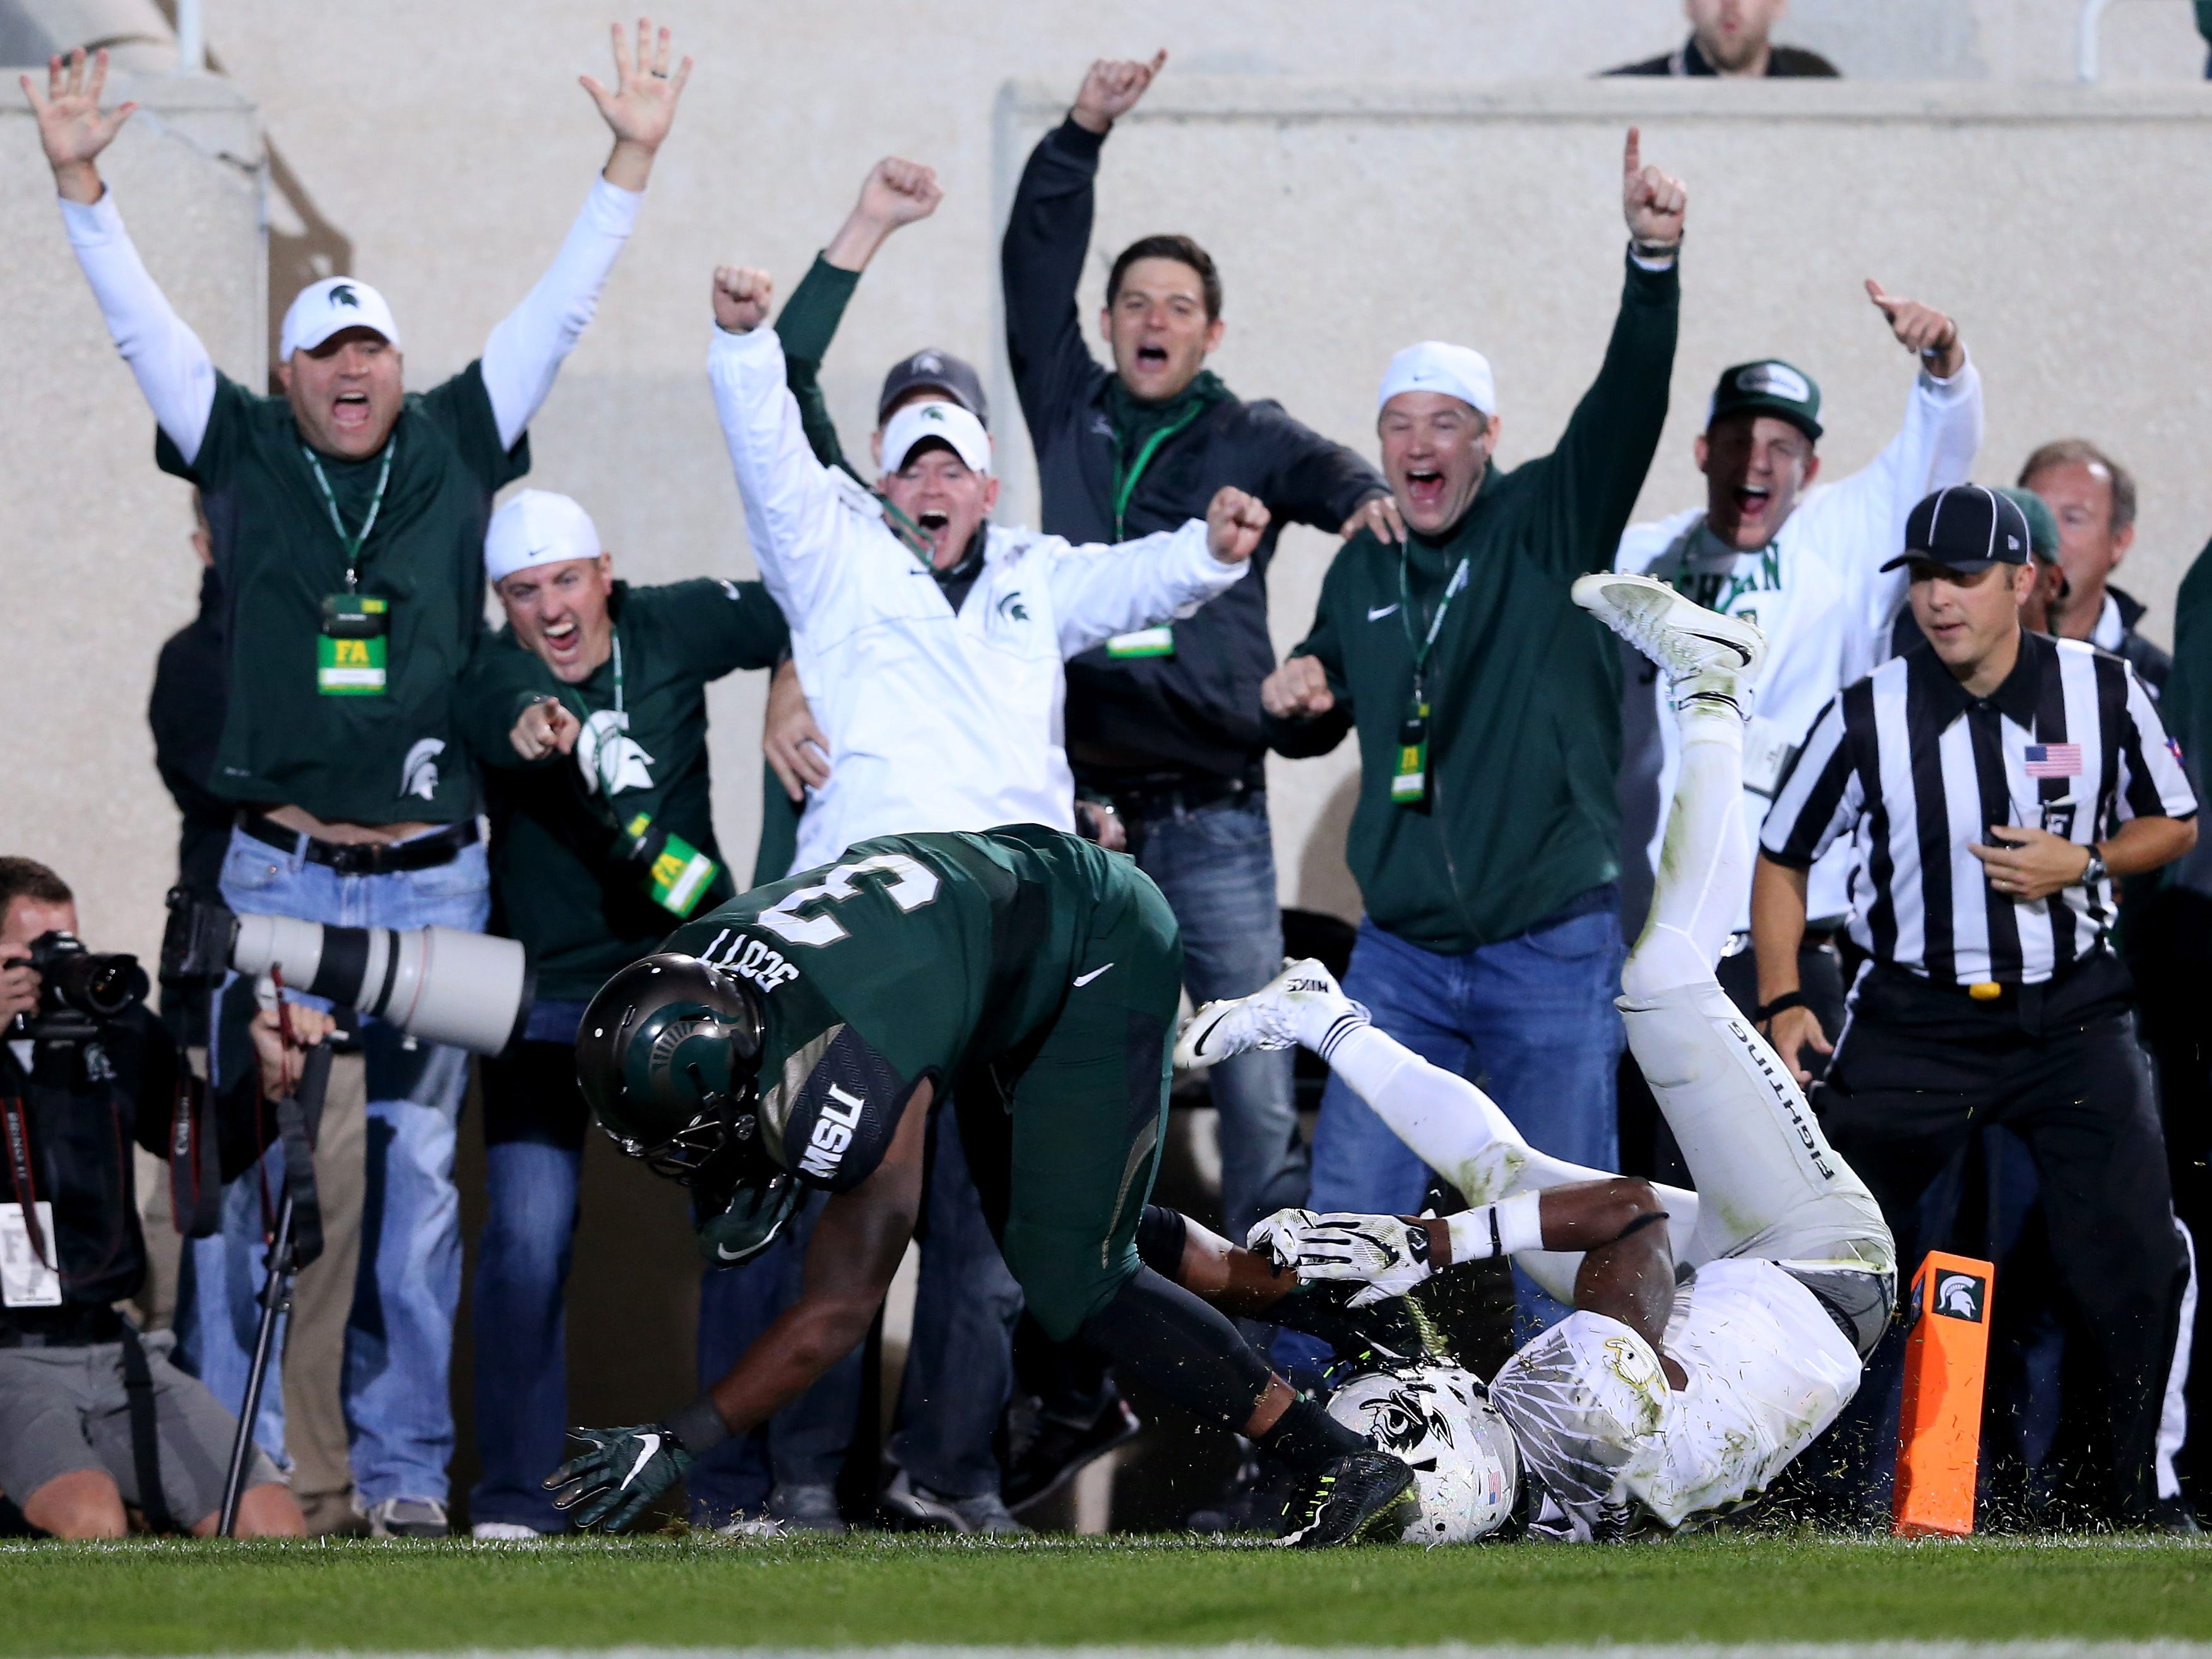 Sept. 12, 2015: No. 5 Michigan State 31, No. 7 Oregon 28: LJ Scott scores a touchdown, to the delight of the fans.